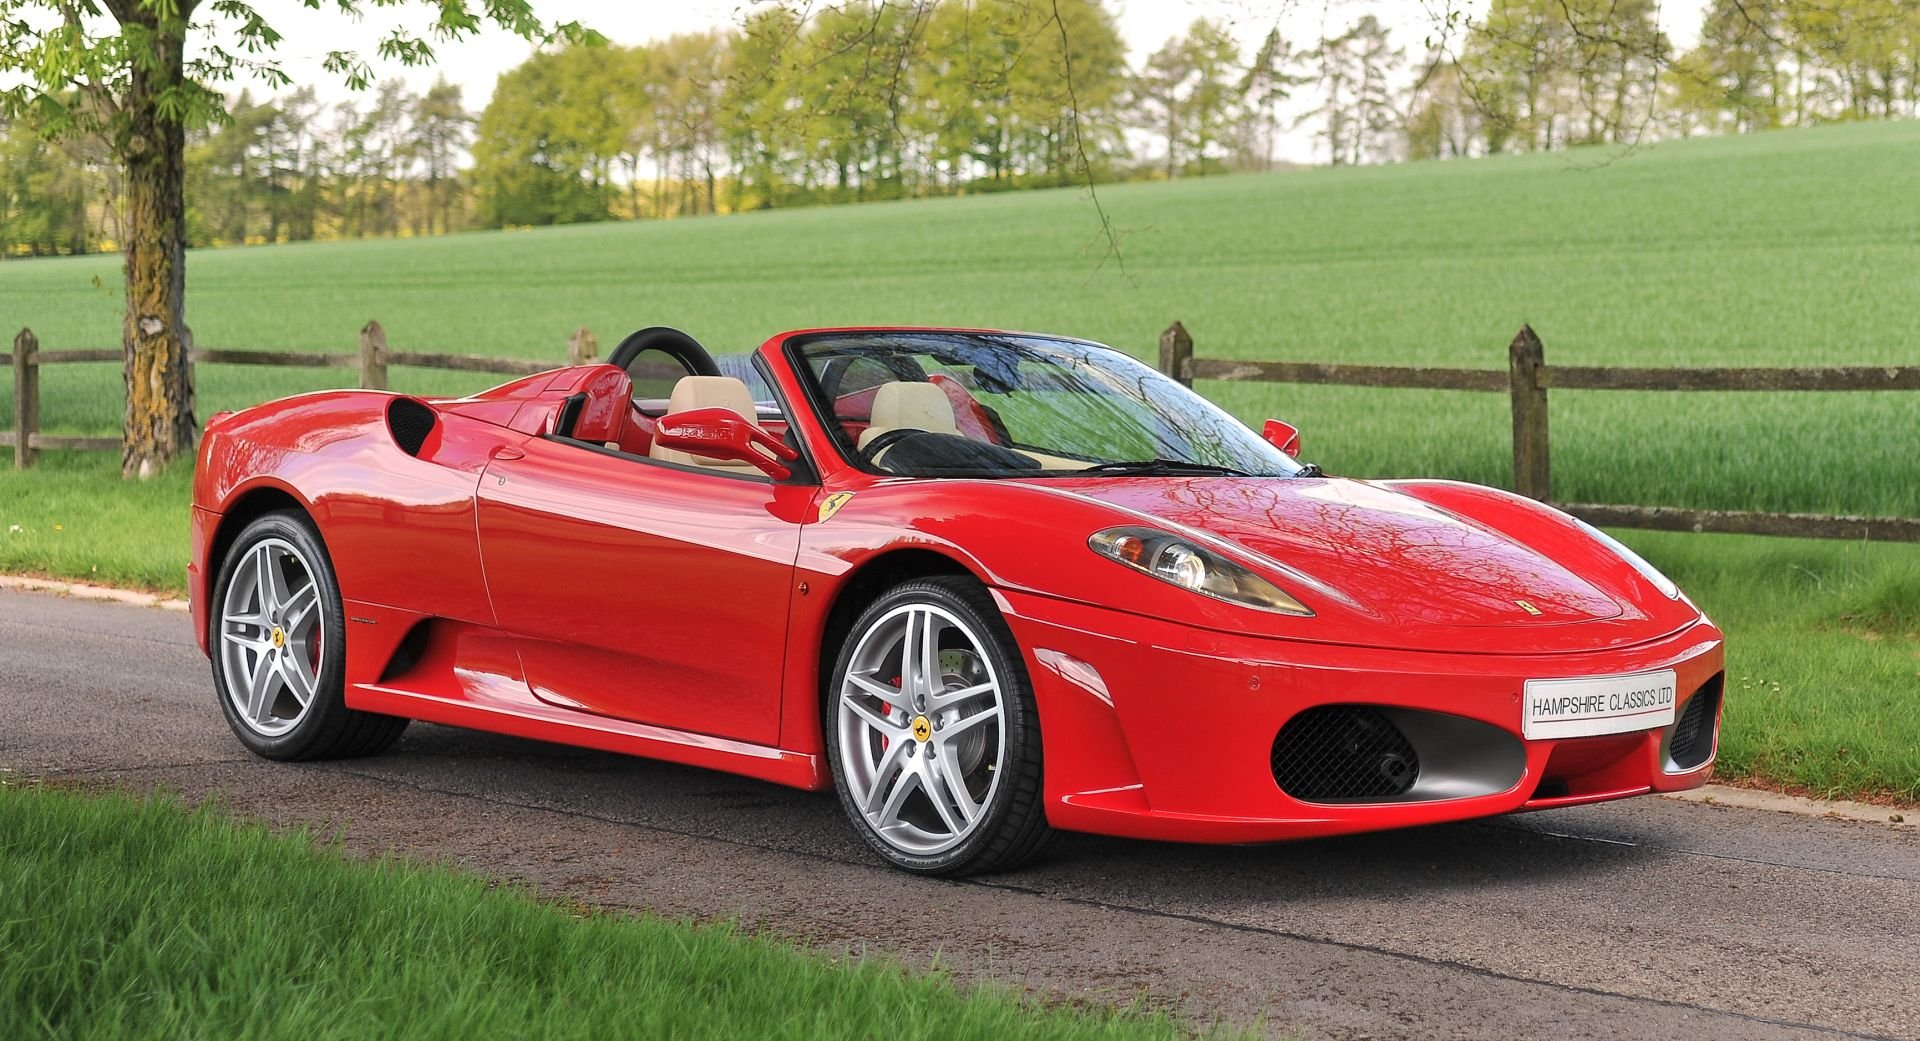 2007 Ferrari F430 Spider Manual with Only 17,412 Miles For Sale (picture 1 of 6)